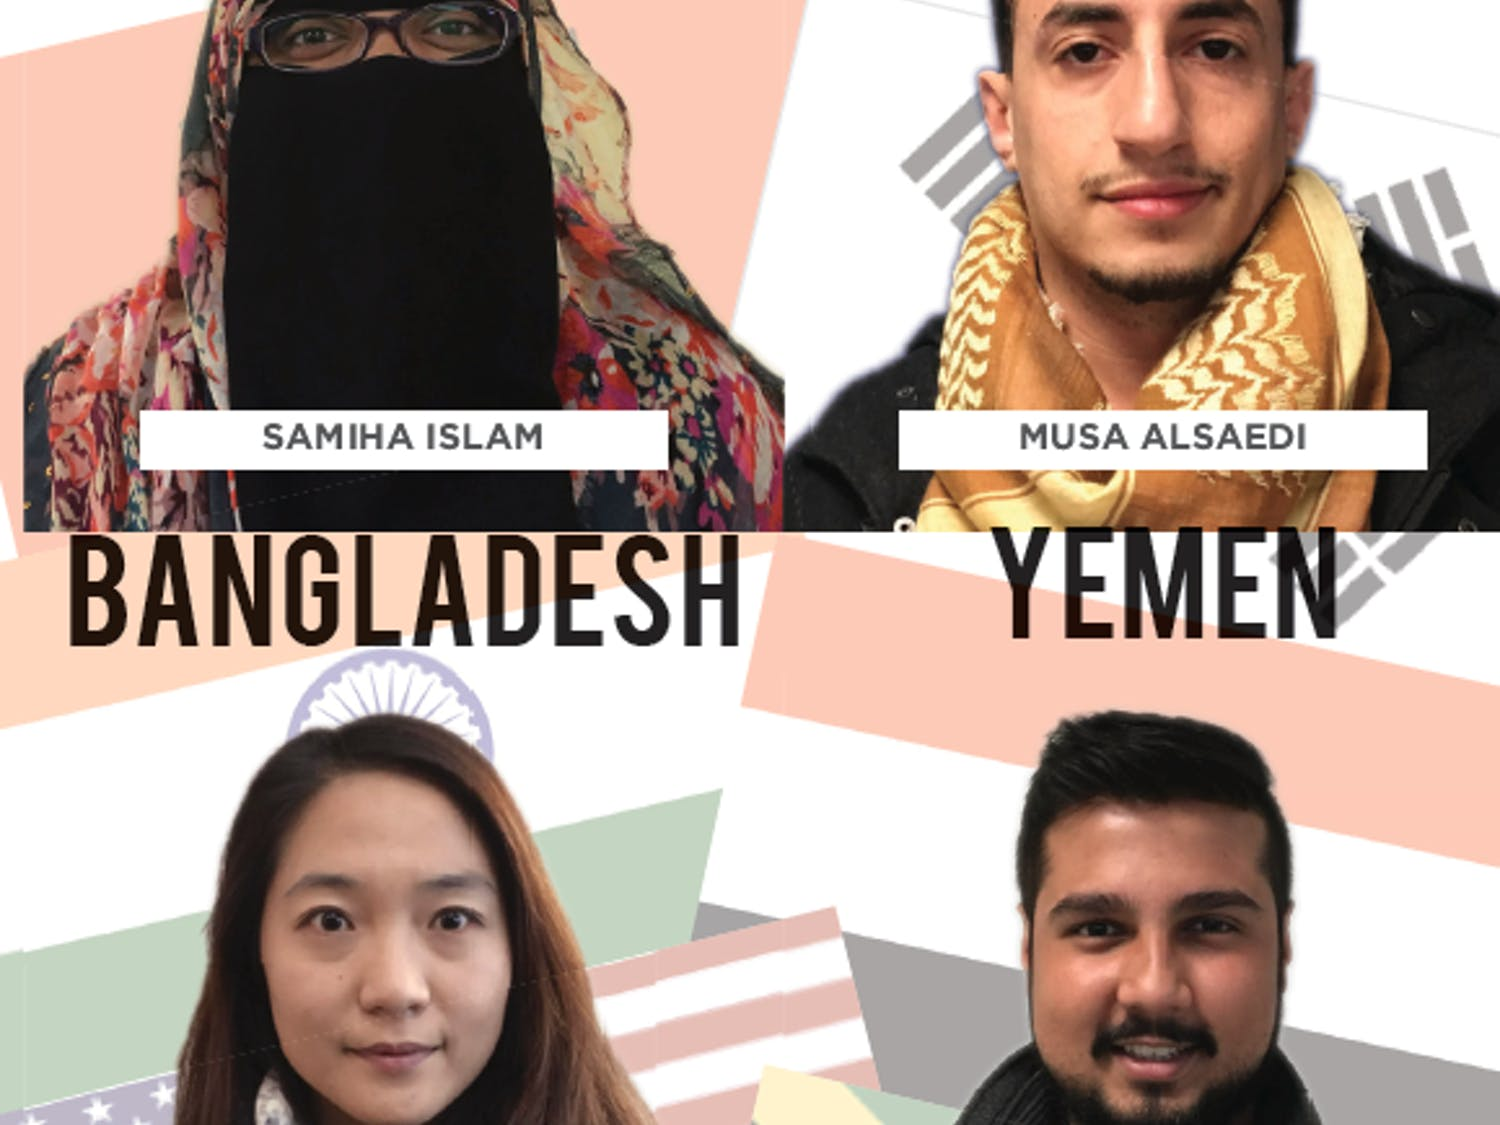 Samiha Islam, Musa Alsaedi, Soojung Baek and Biplab Bhattacharya are four UB students. Muslim and non-Muslim students share their reactions to President Trump's travel ban.